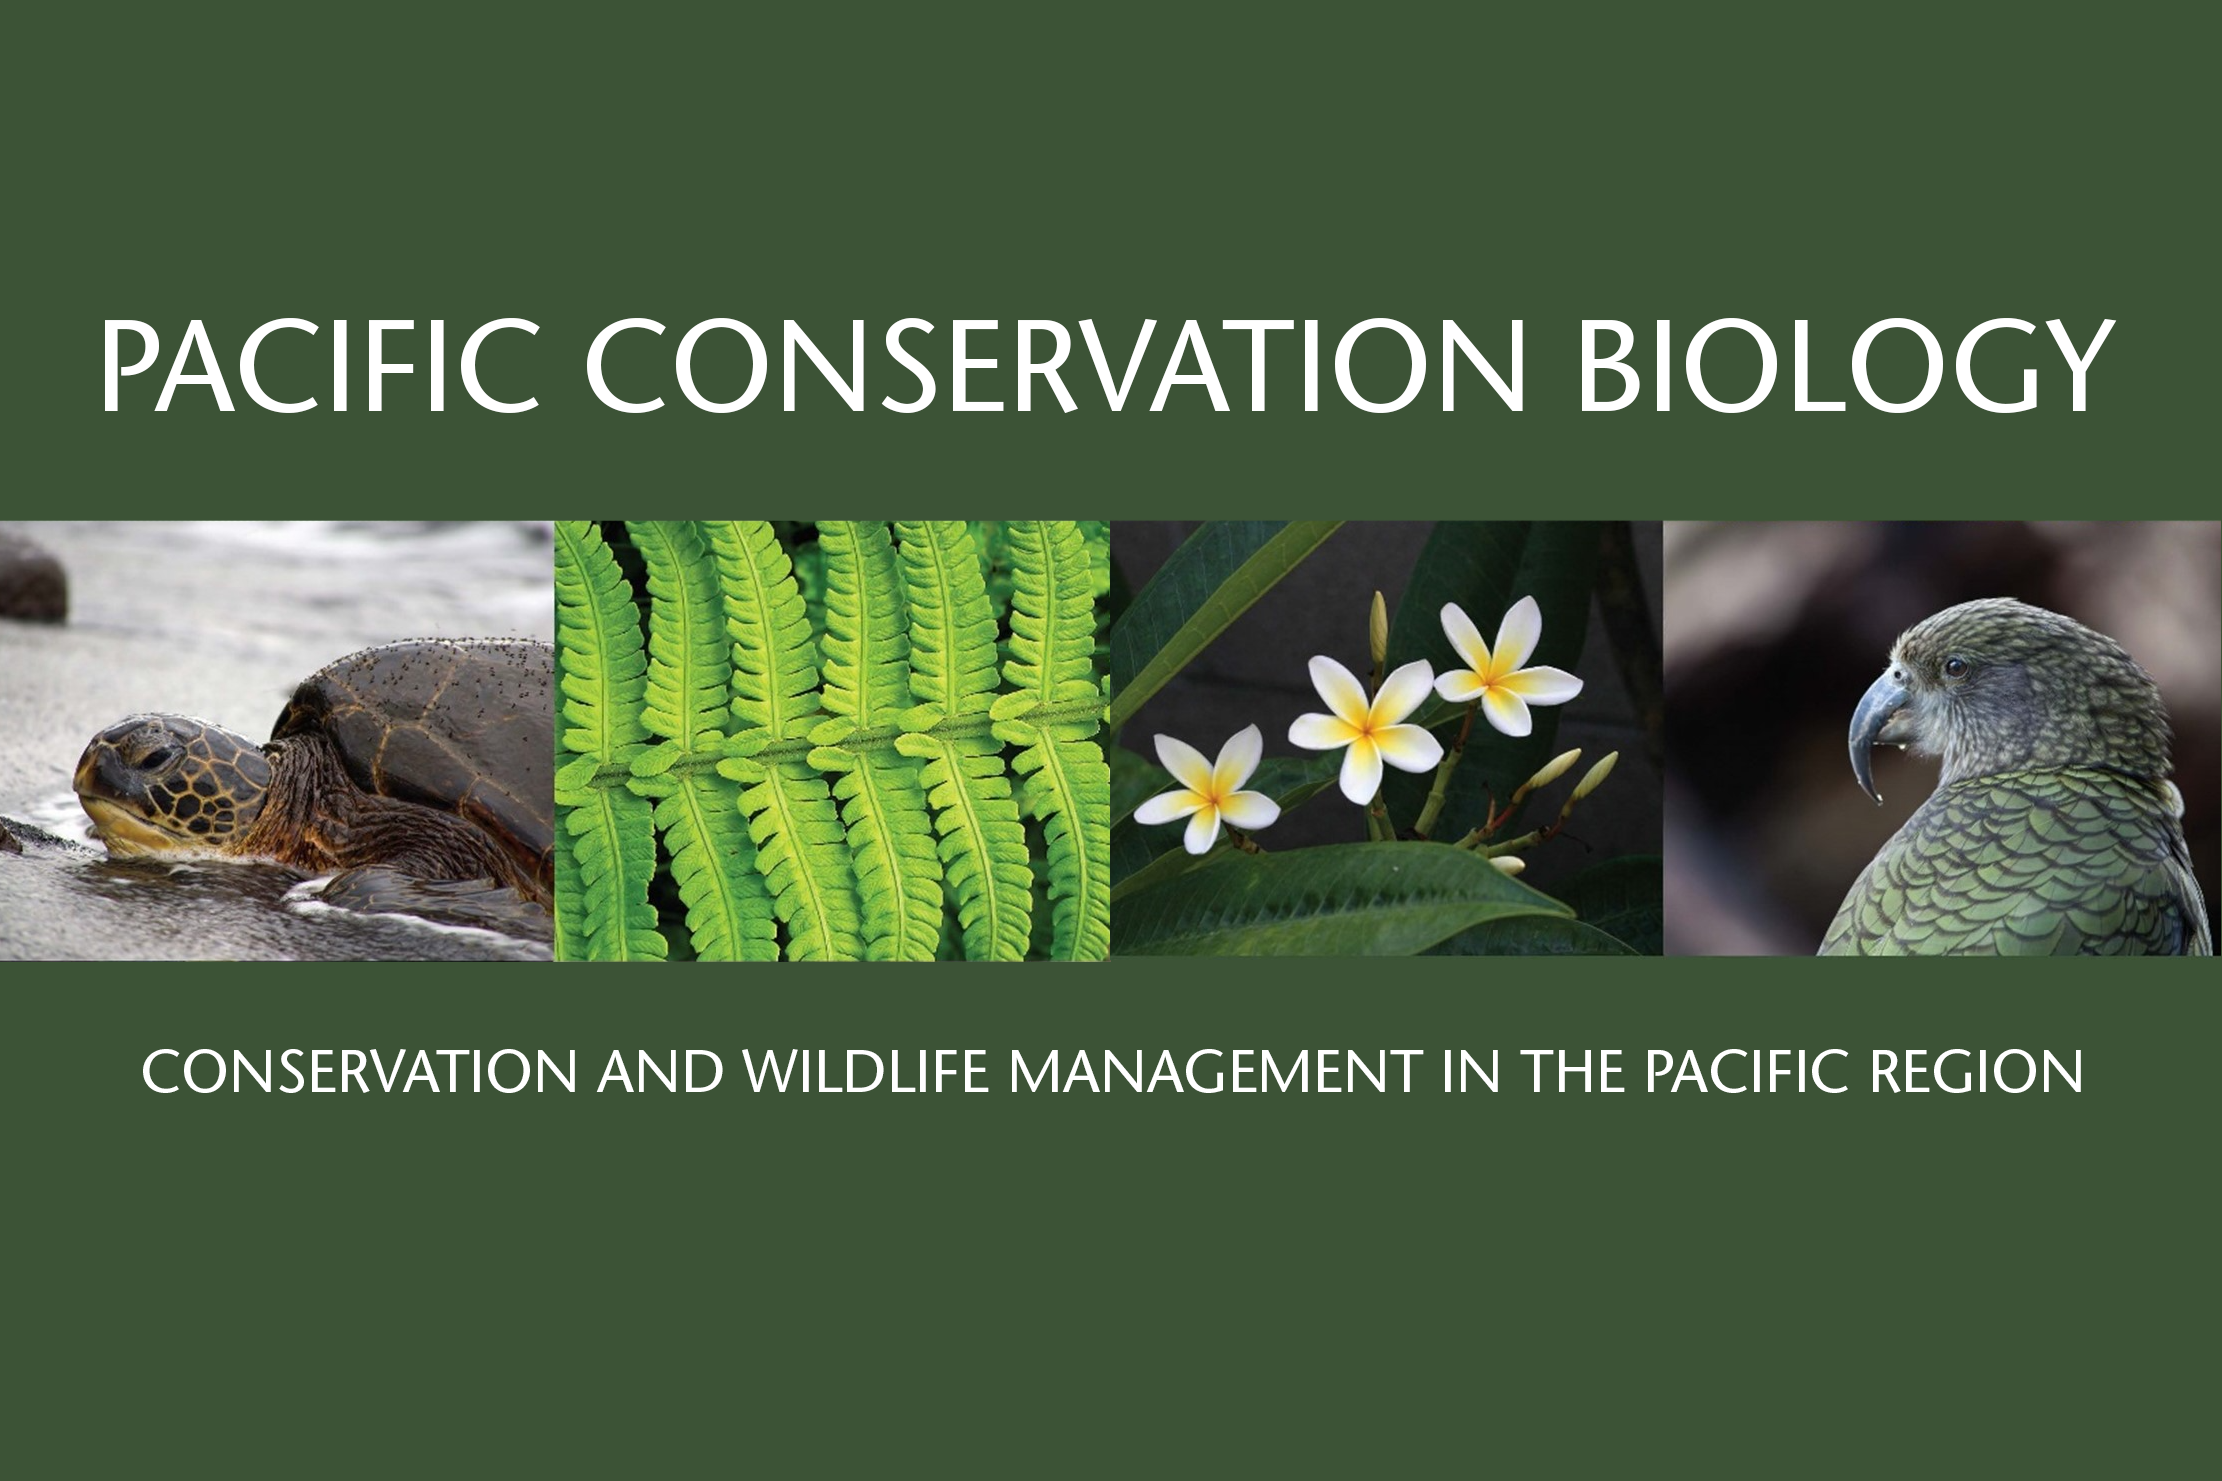 Pacific Conservation Biology seeking a Social Media Editor